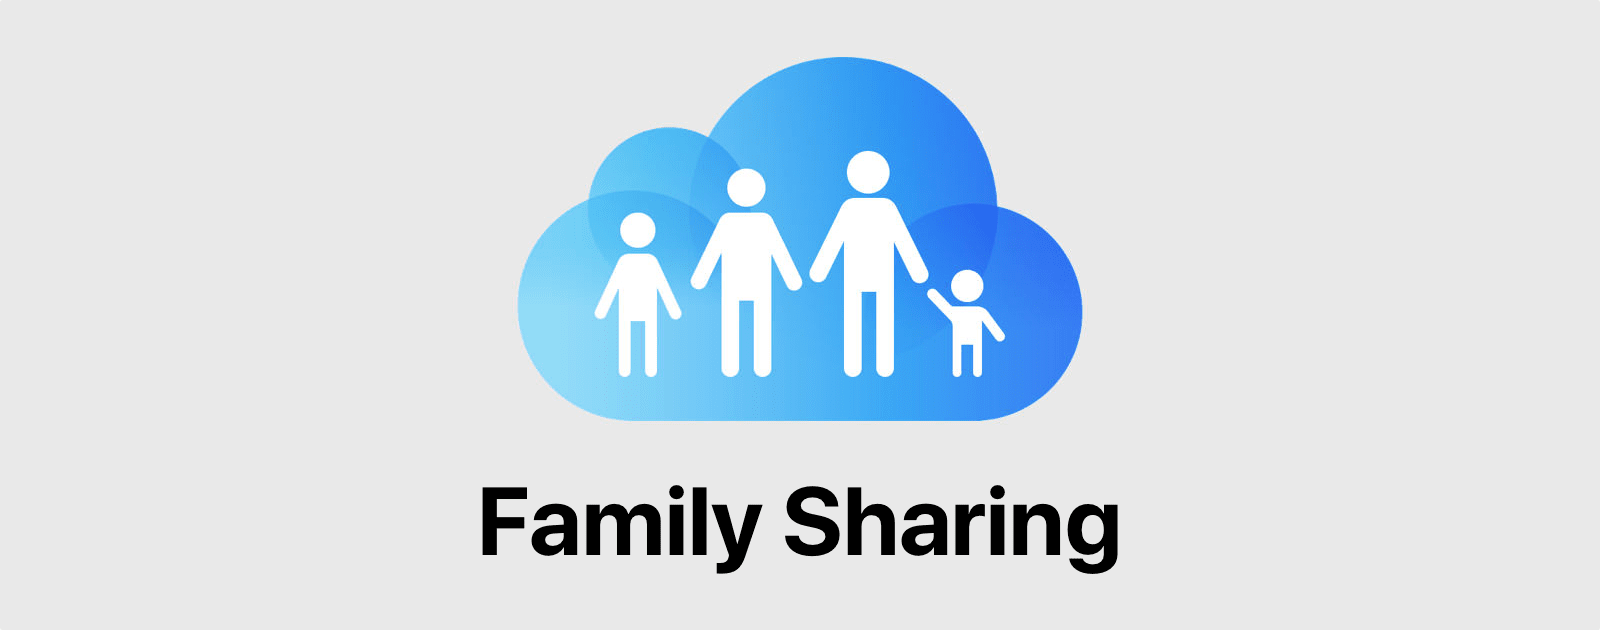 Image of Apple's Family Sharing icon. You can set up Family Sharing in iOS.